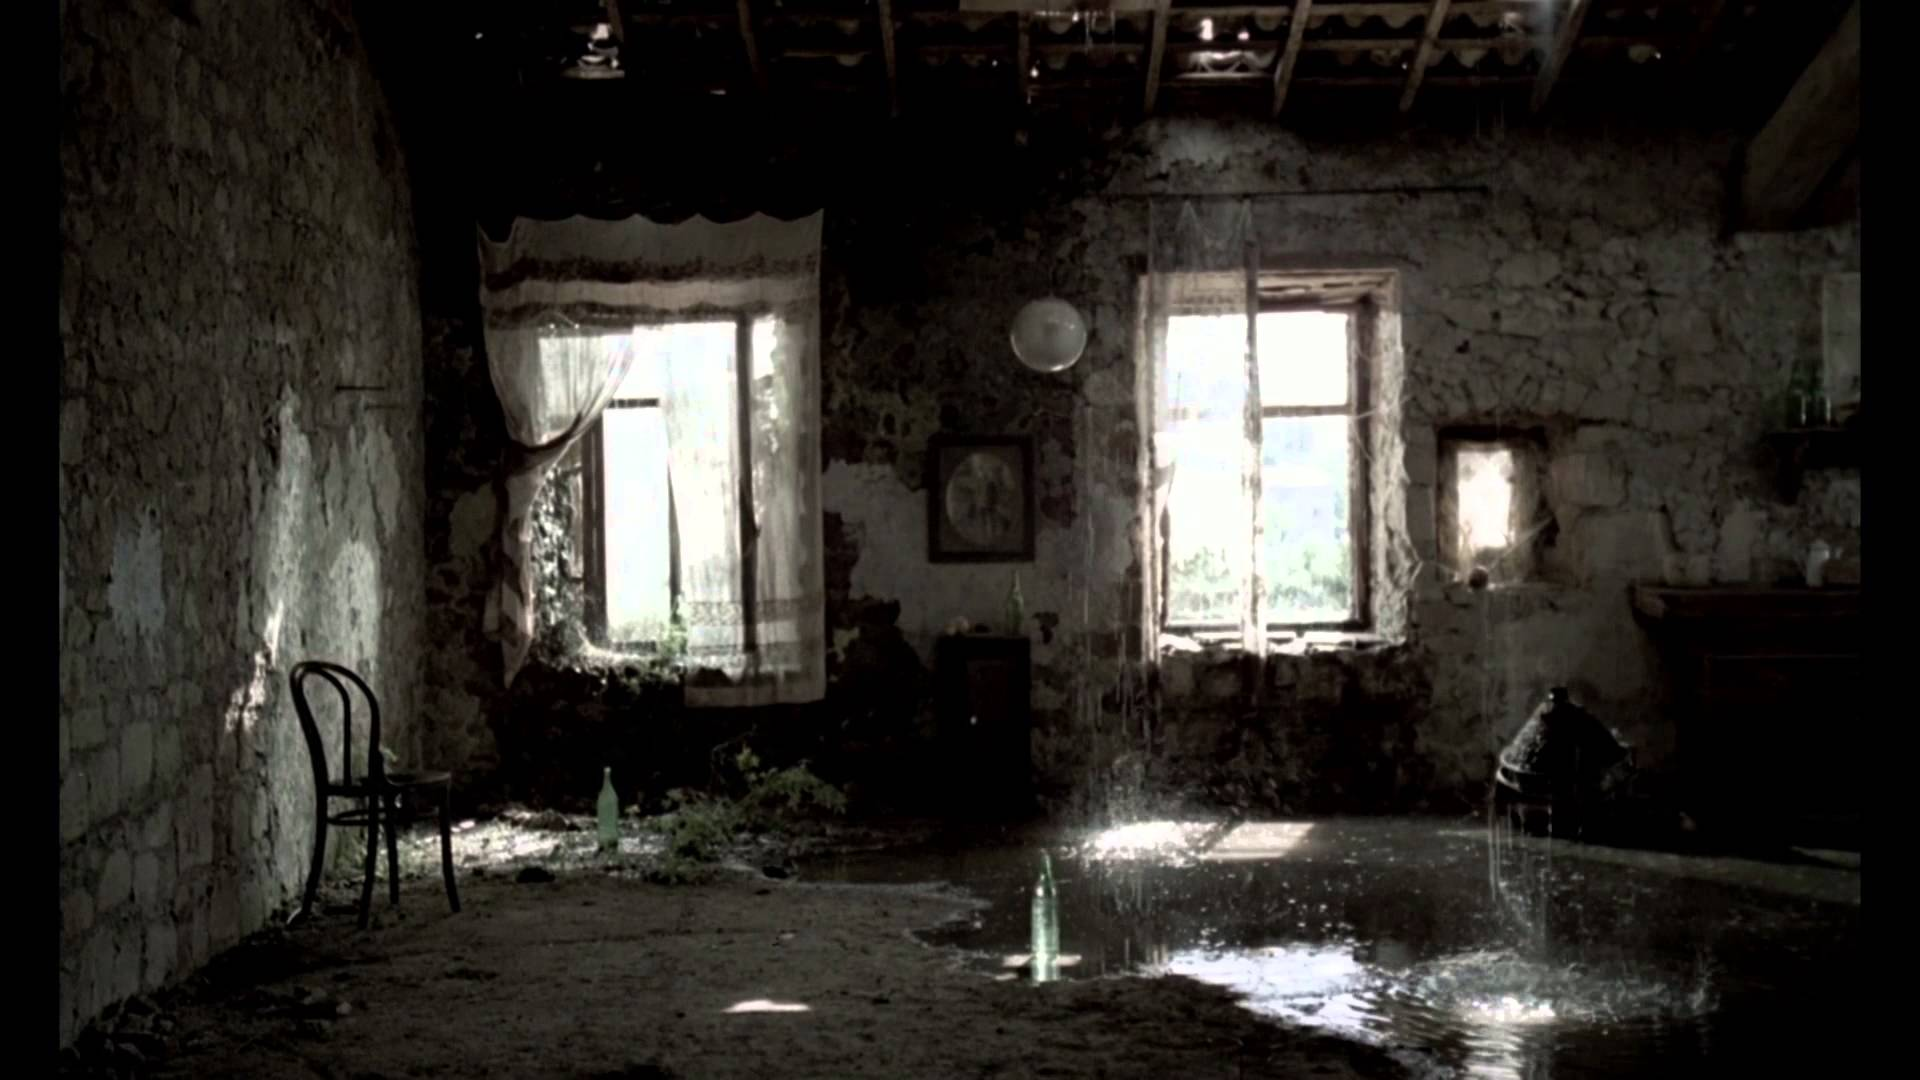 5 Film Techniques You Can Learn from Andrei Tarkovsky Right Now - Nostalghia